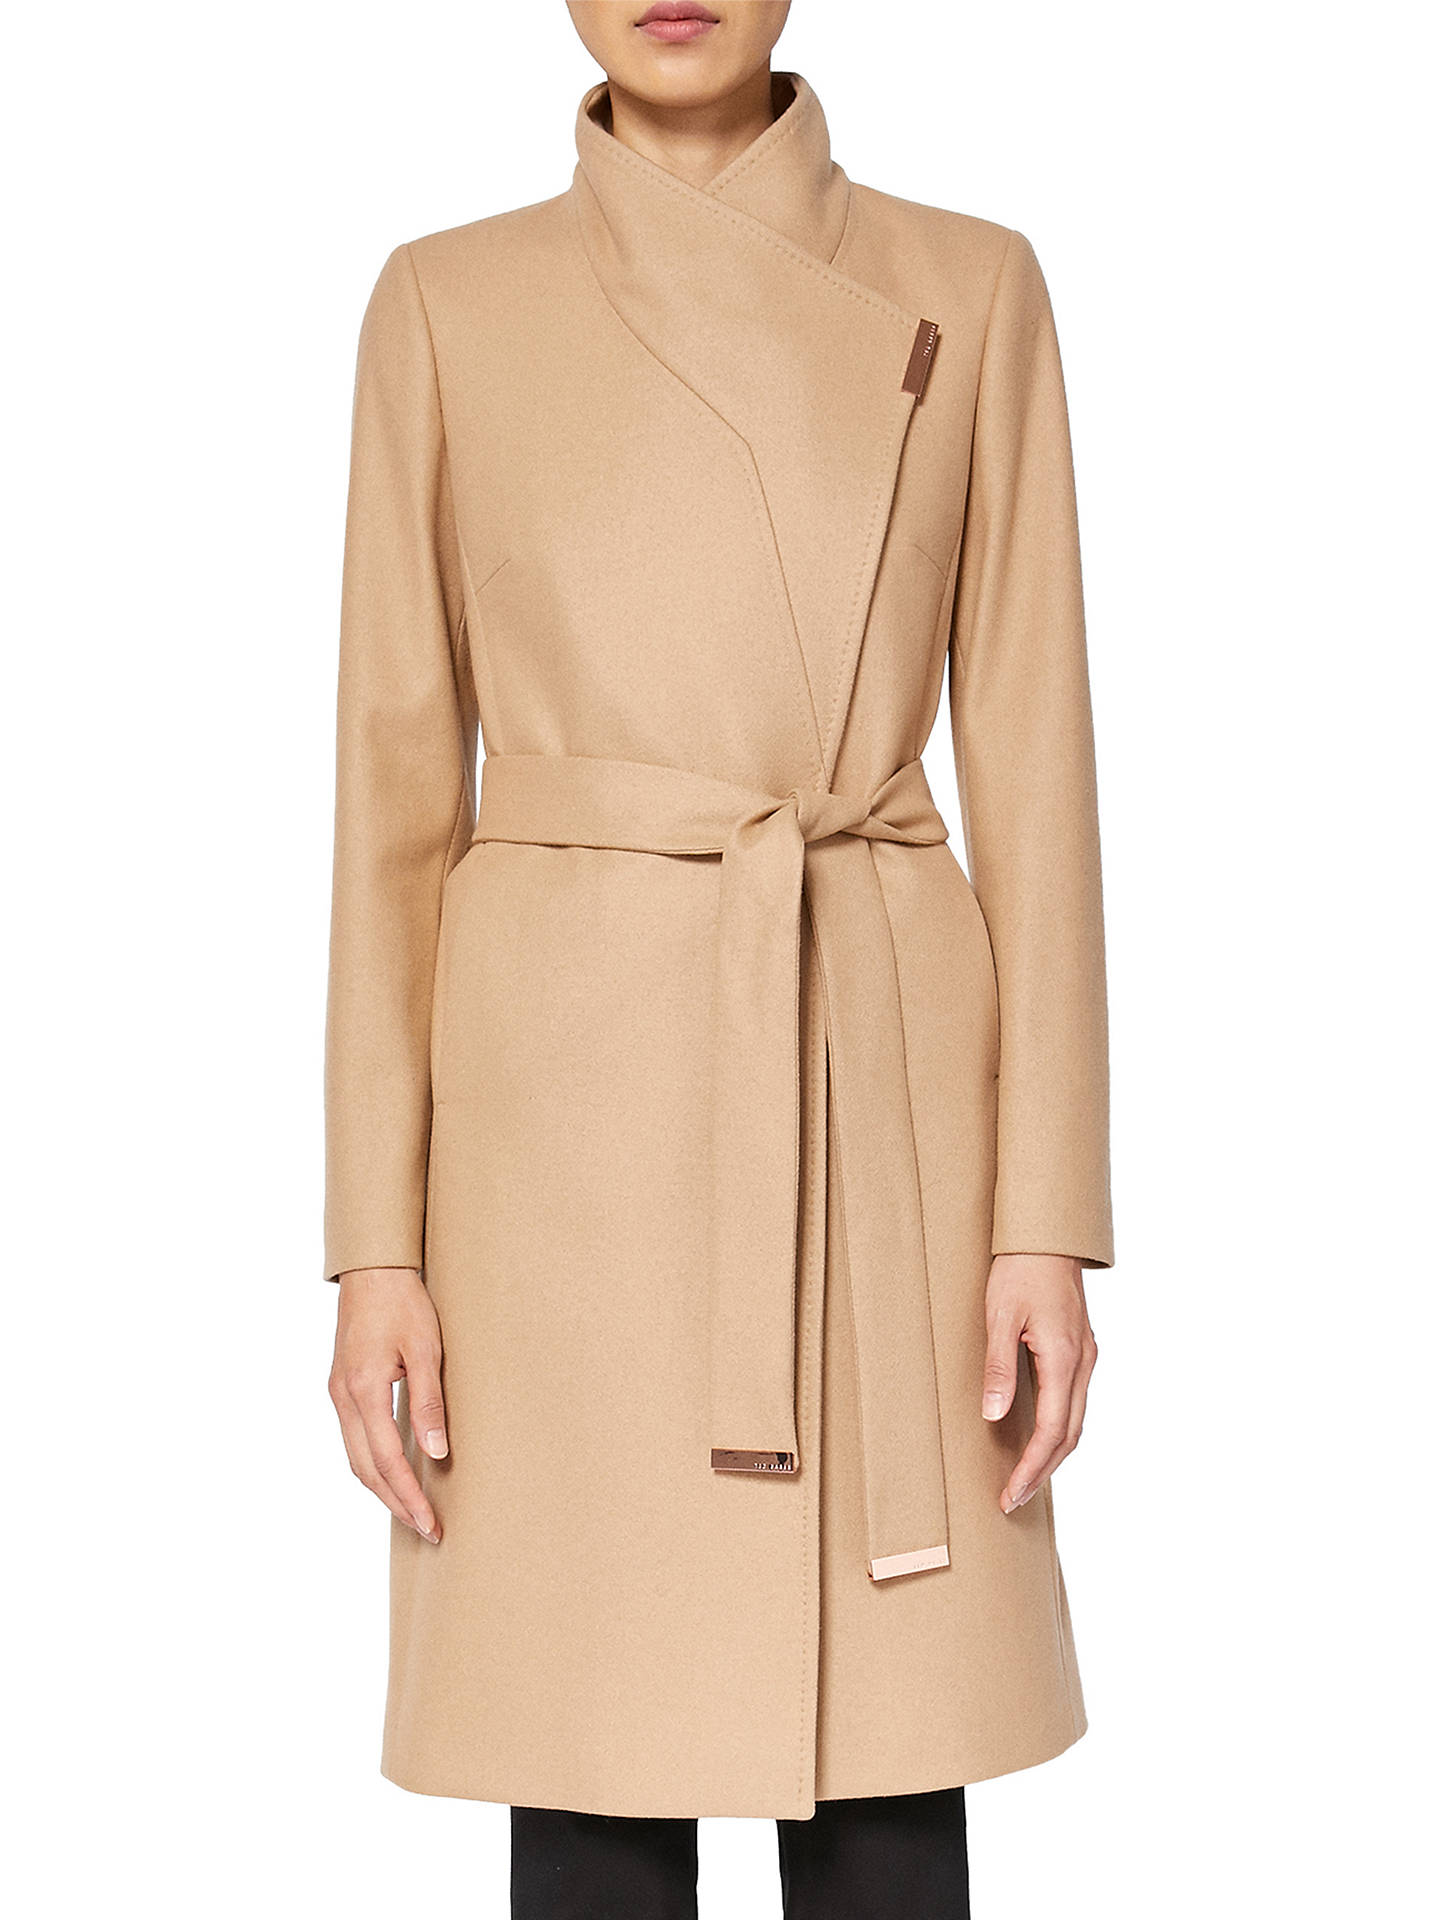 55192d2f8 Ted Baker Kikiie Wrap Front Coat at John Lewis   Partners